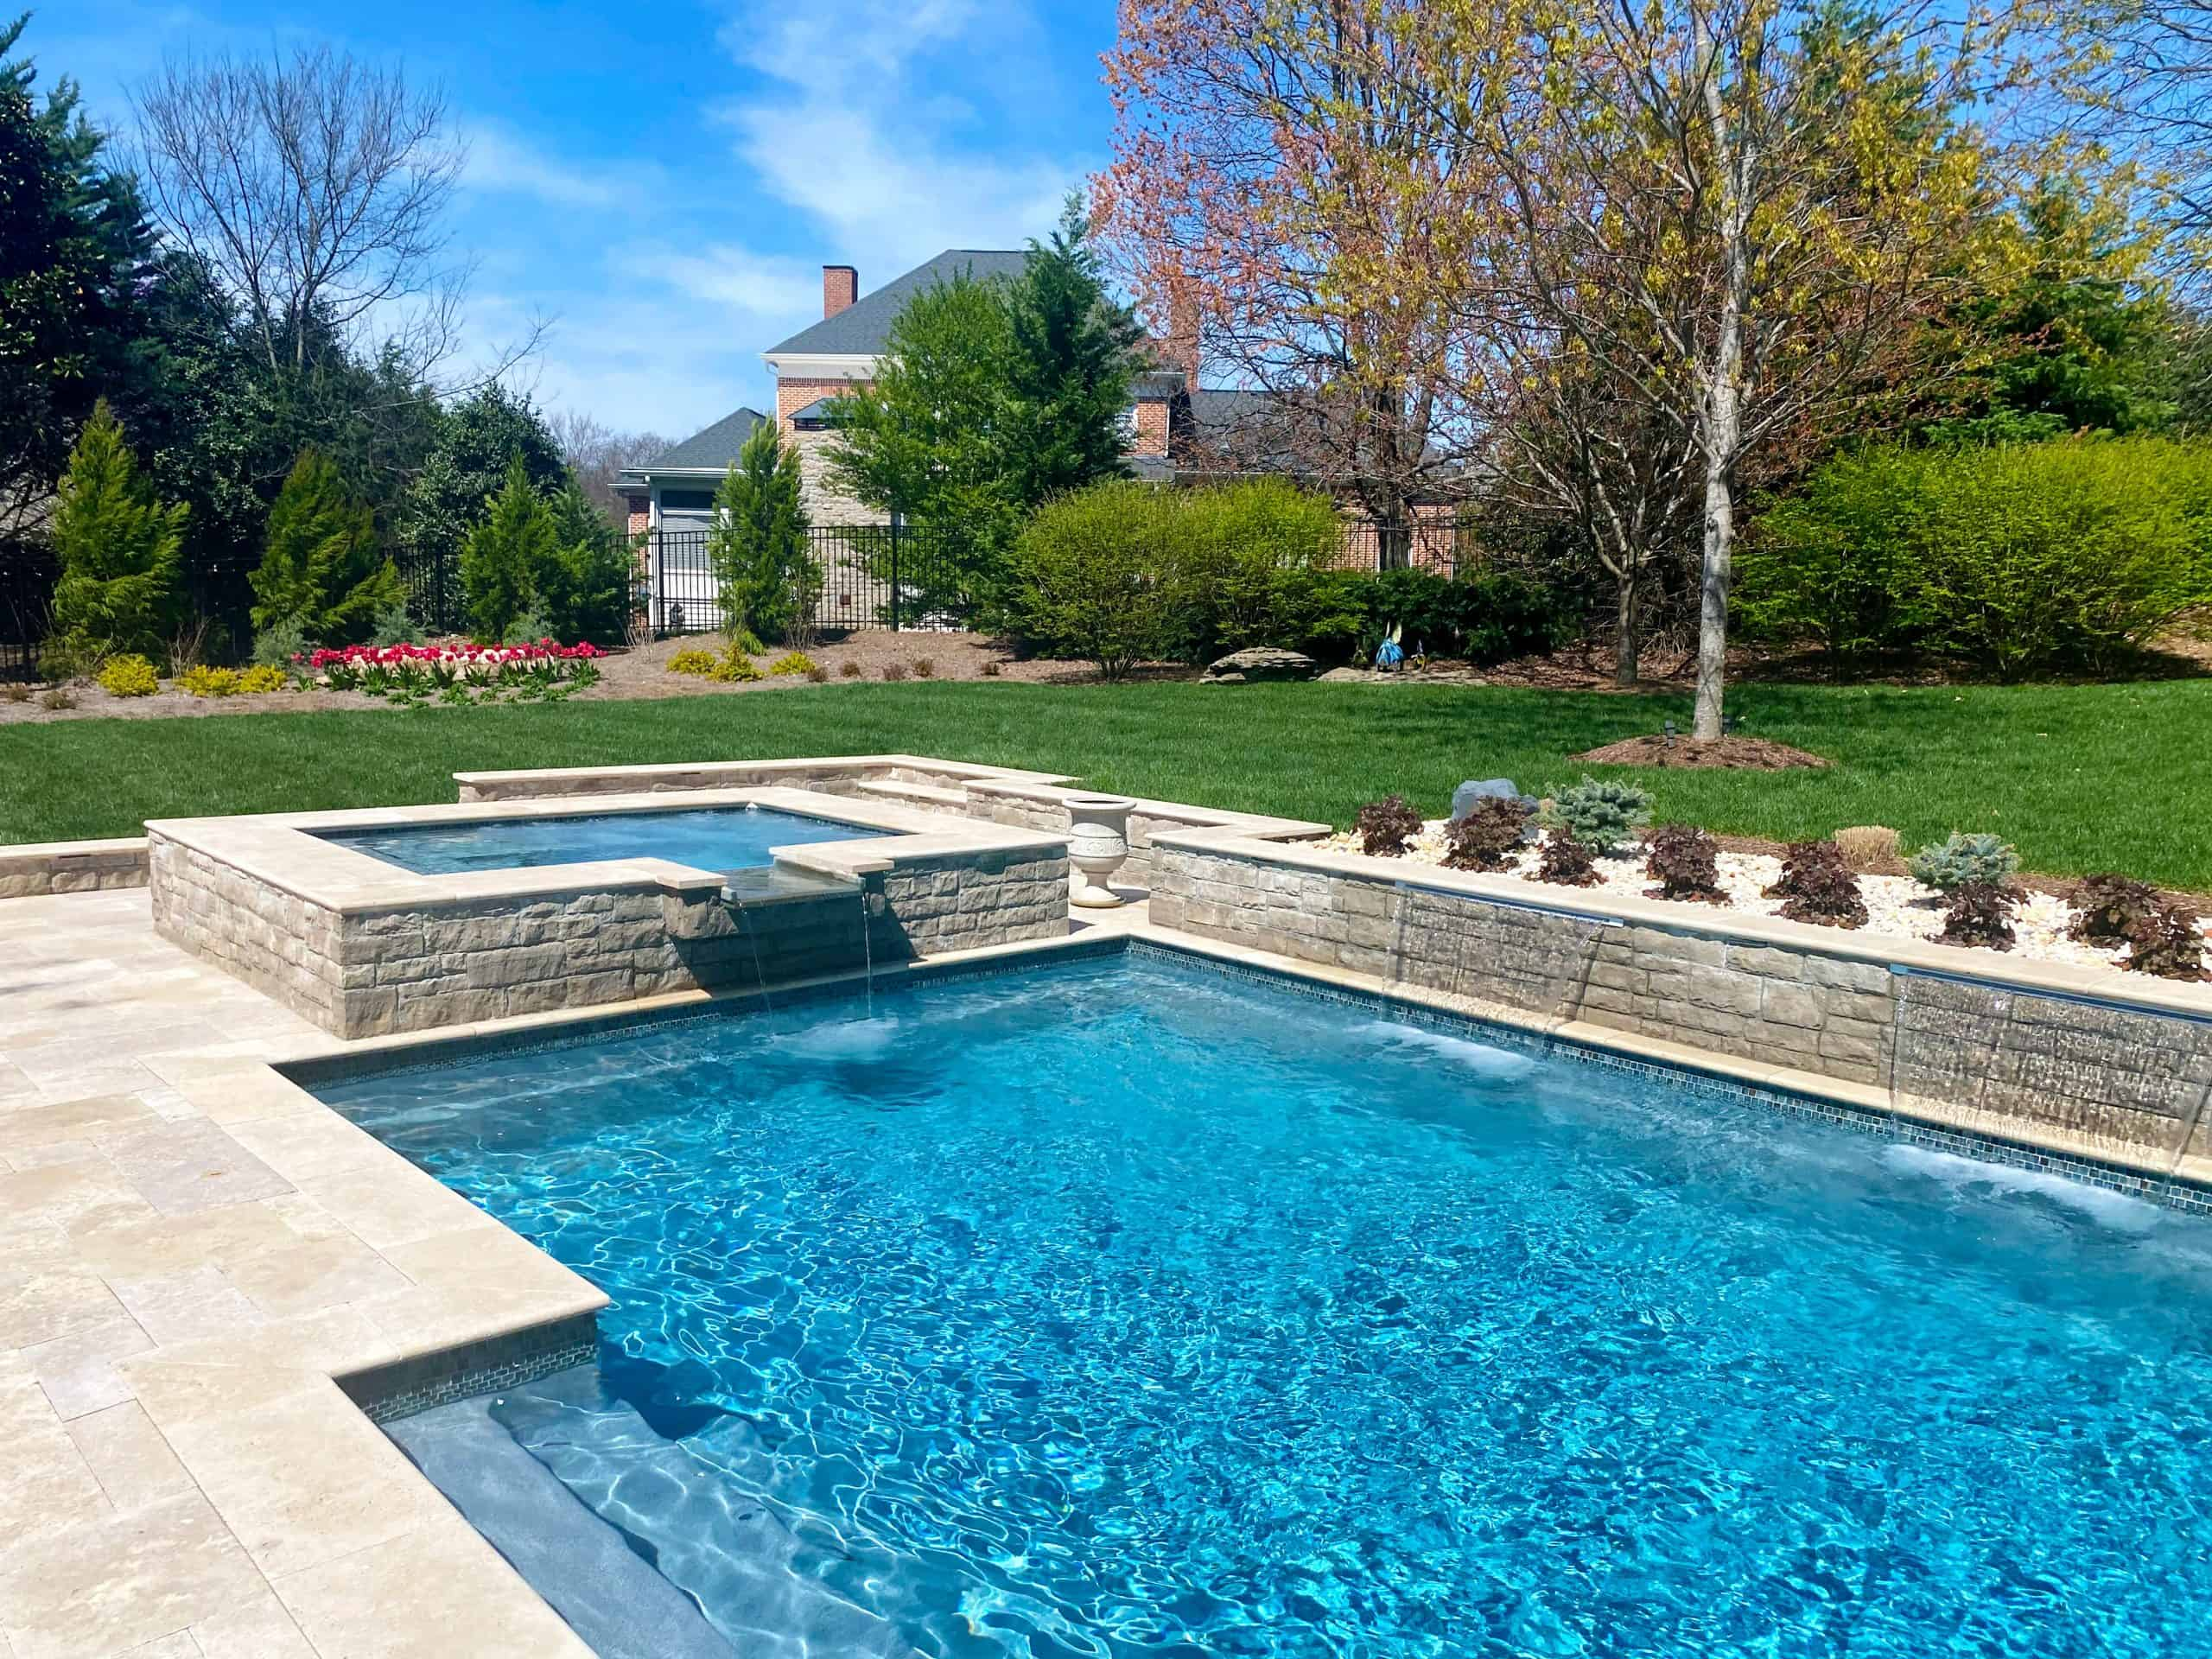 Franklin Stone - Pool - Spa - Hot Tub - Middle TN